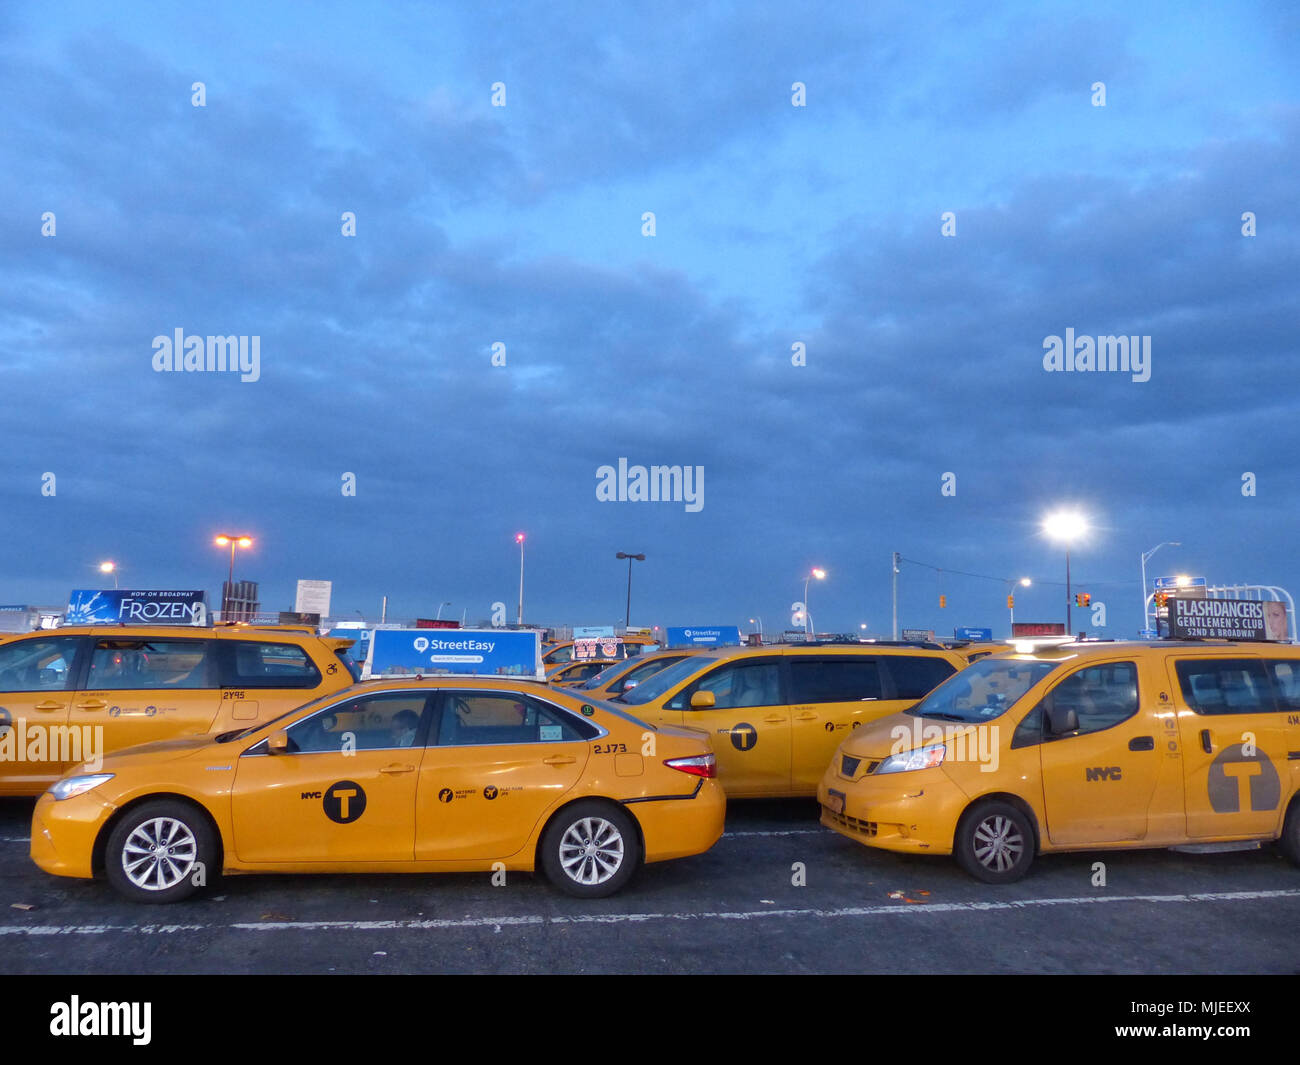 Yellowcabs licensed by NYC Taxi & Limousine Commission, wait at JFK Central taxi Hold, for their turn to pick up airline passengers - Stock Image